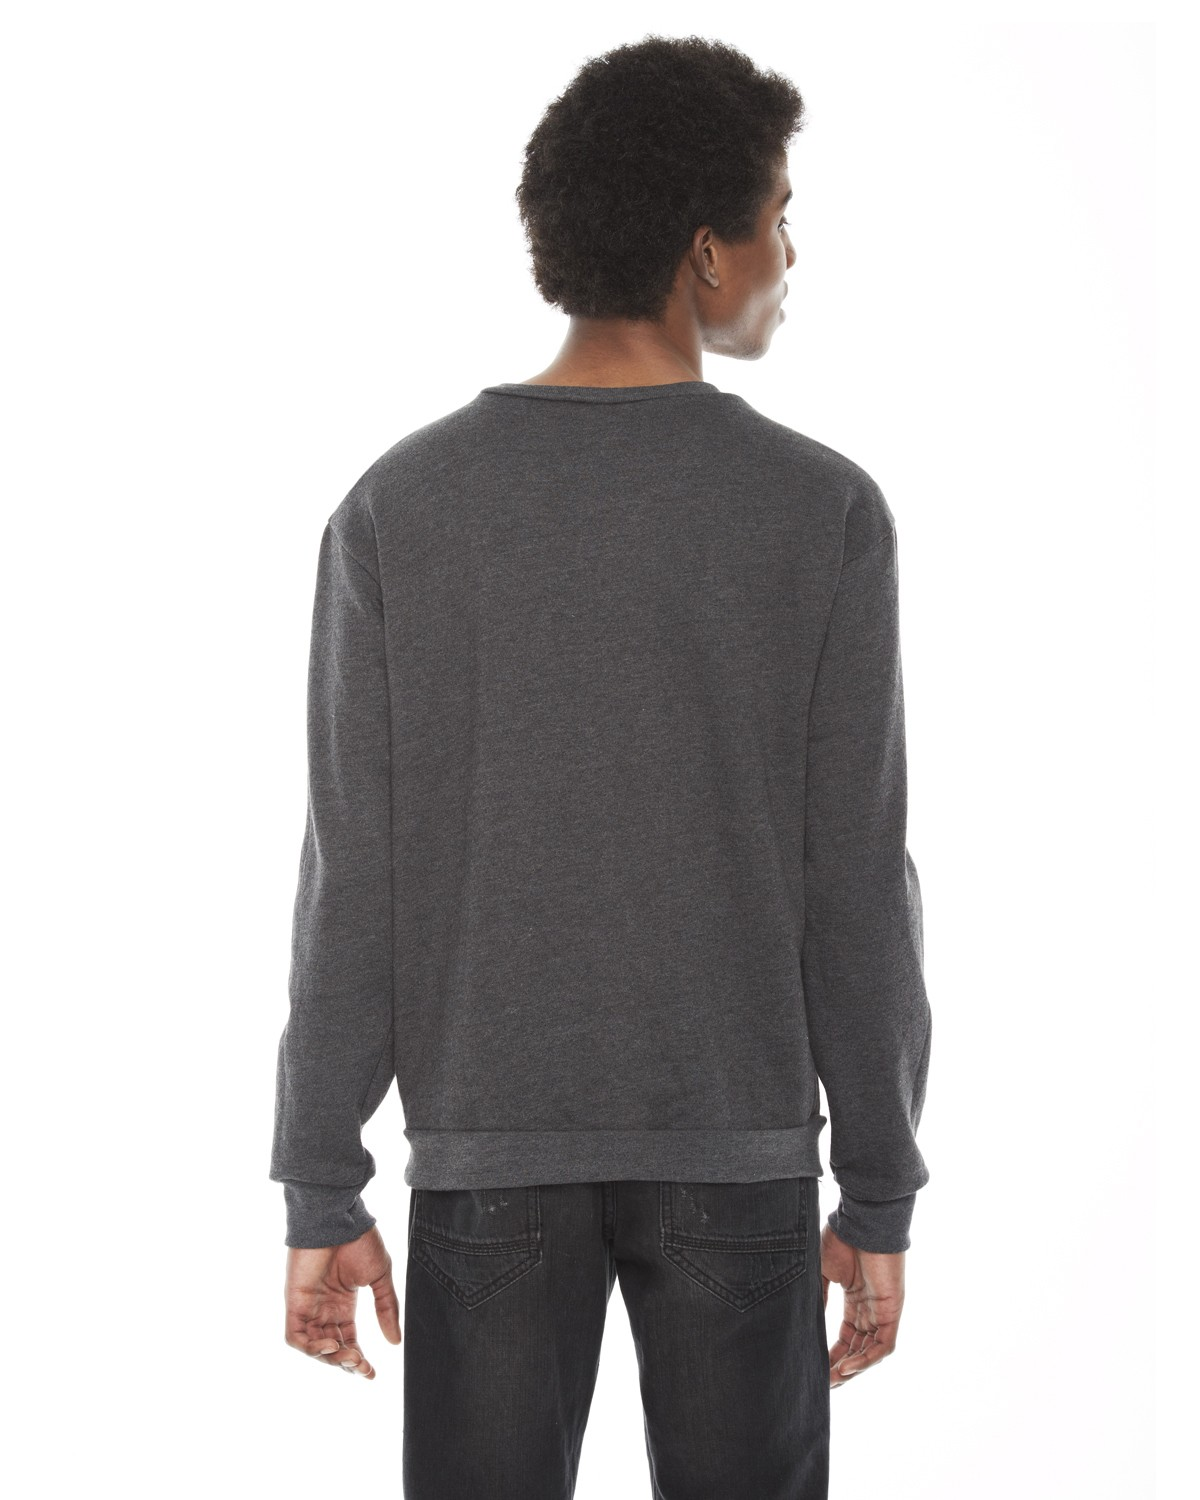 F496W American Apparel DK HEATHER GREY